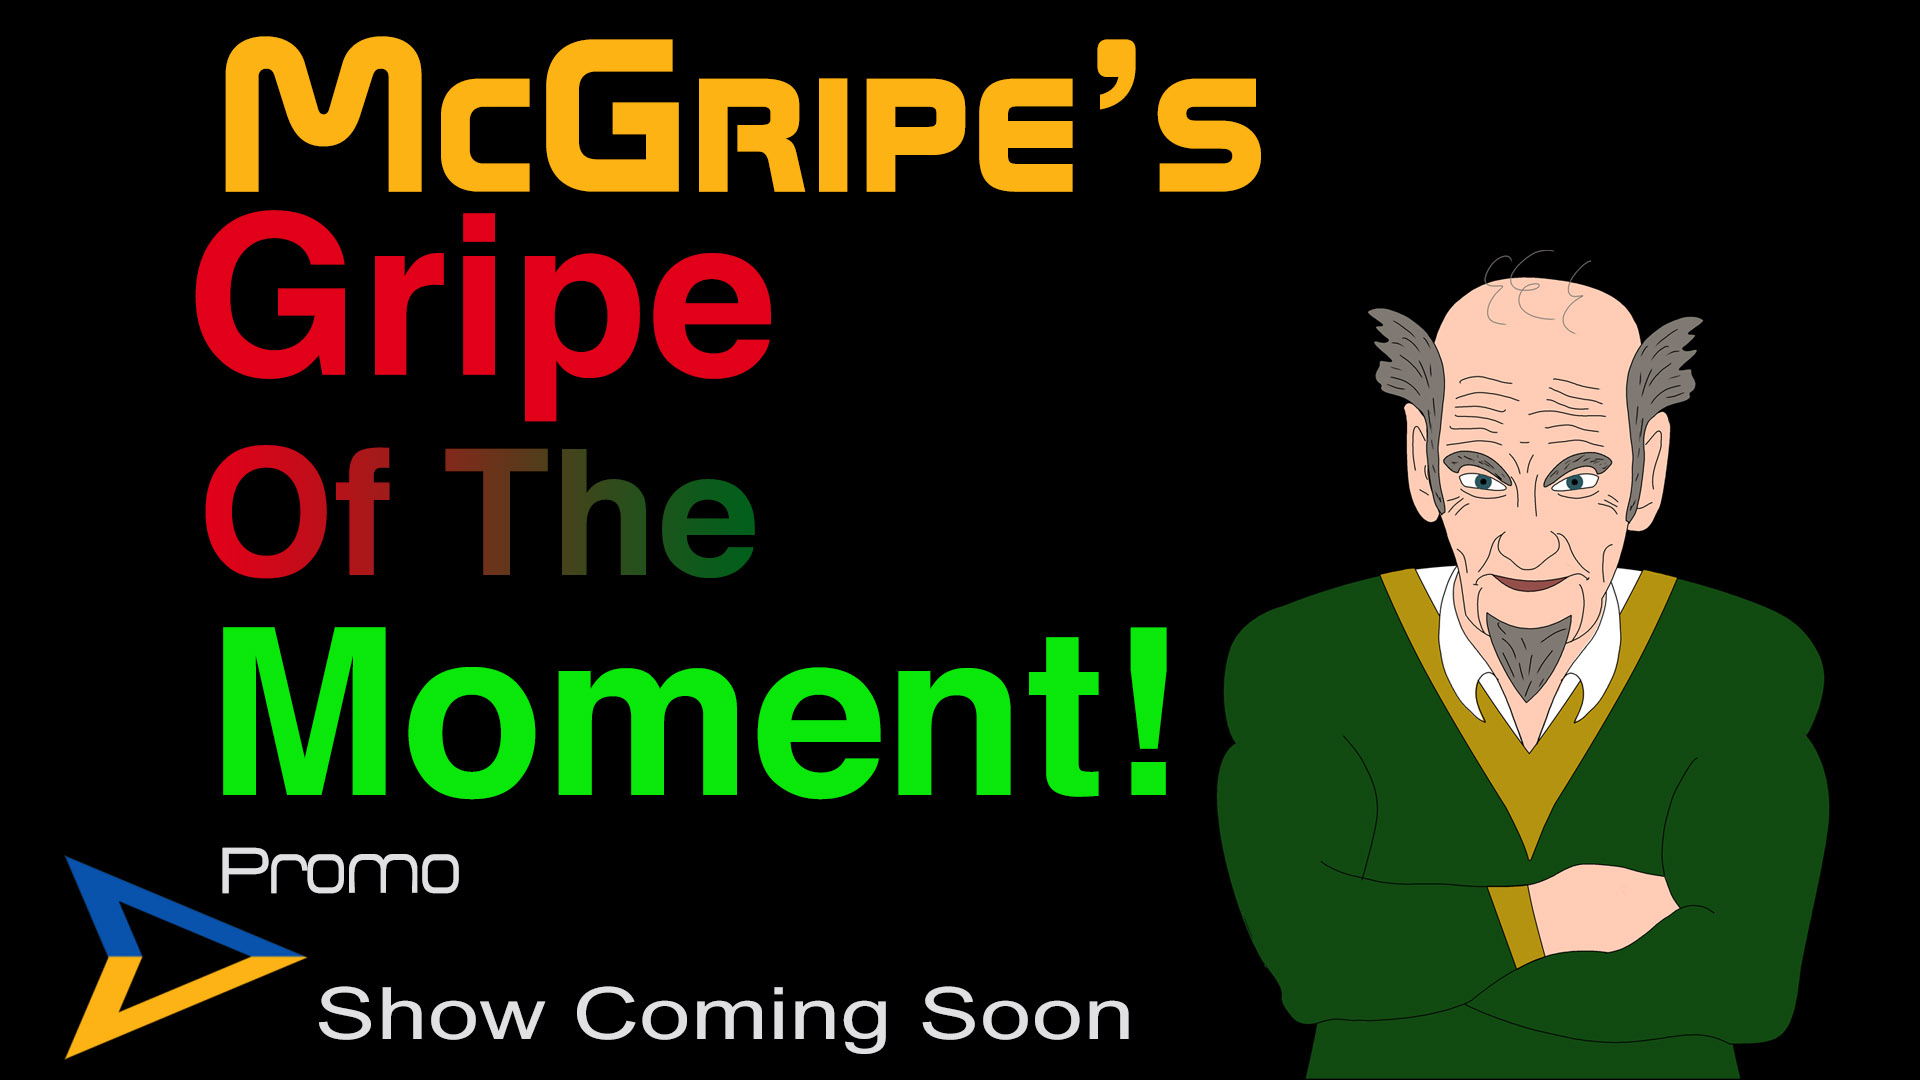 IYB's McGripe's Gripe of the Moment – Promo